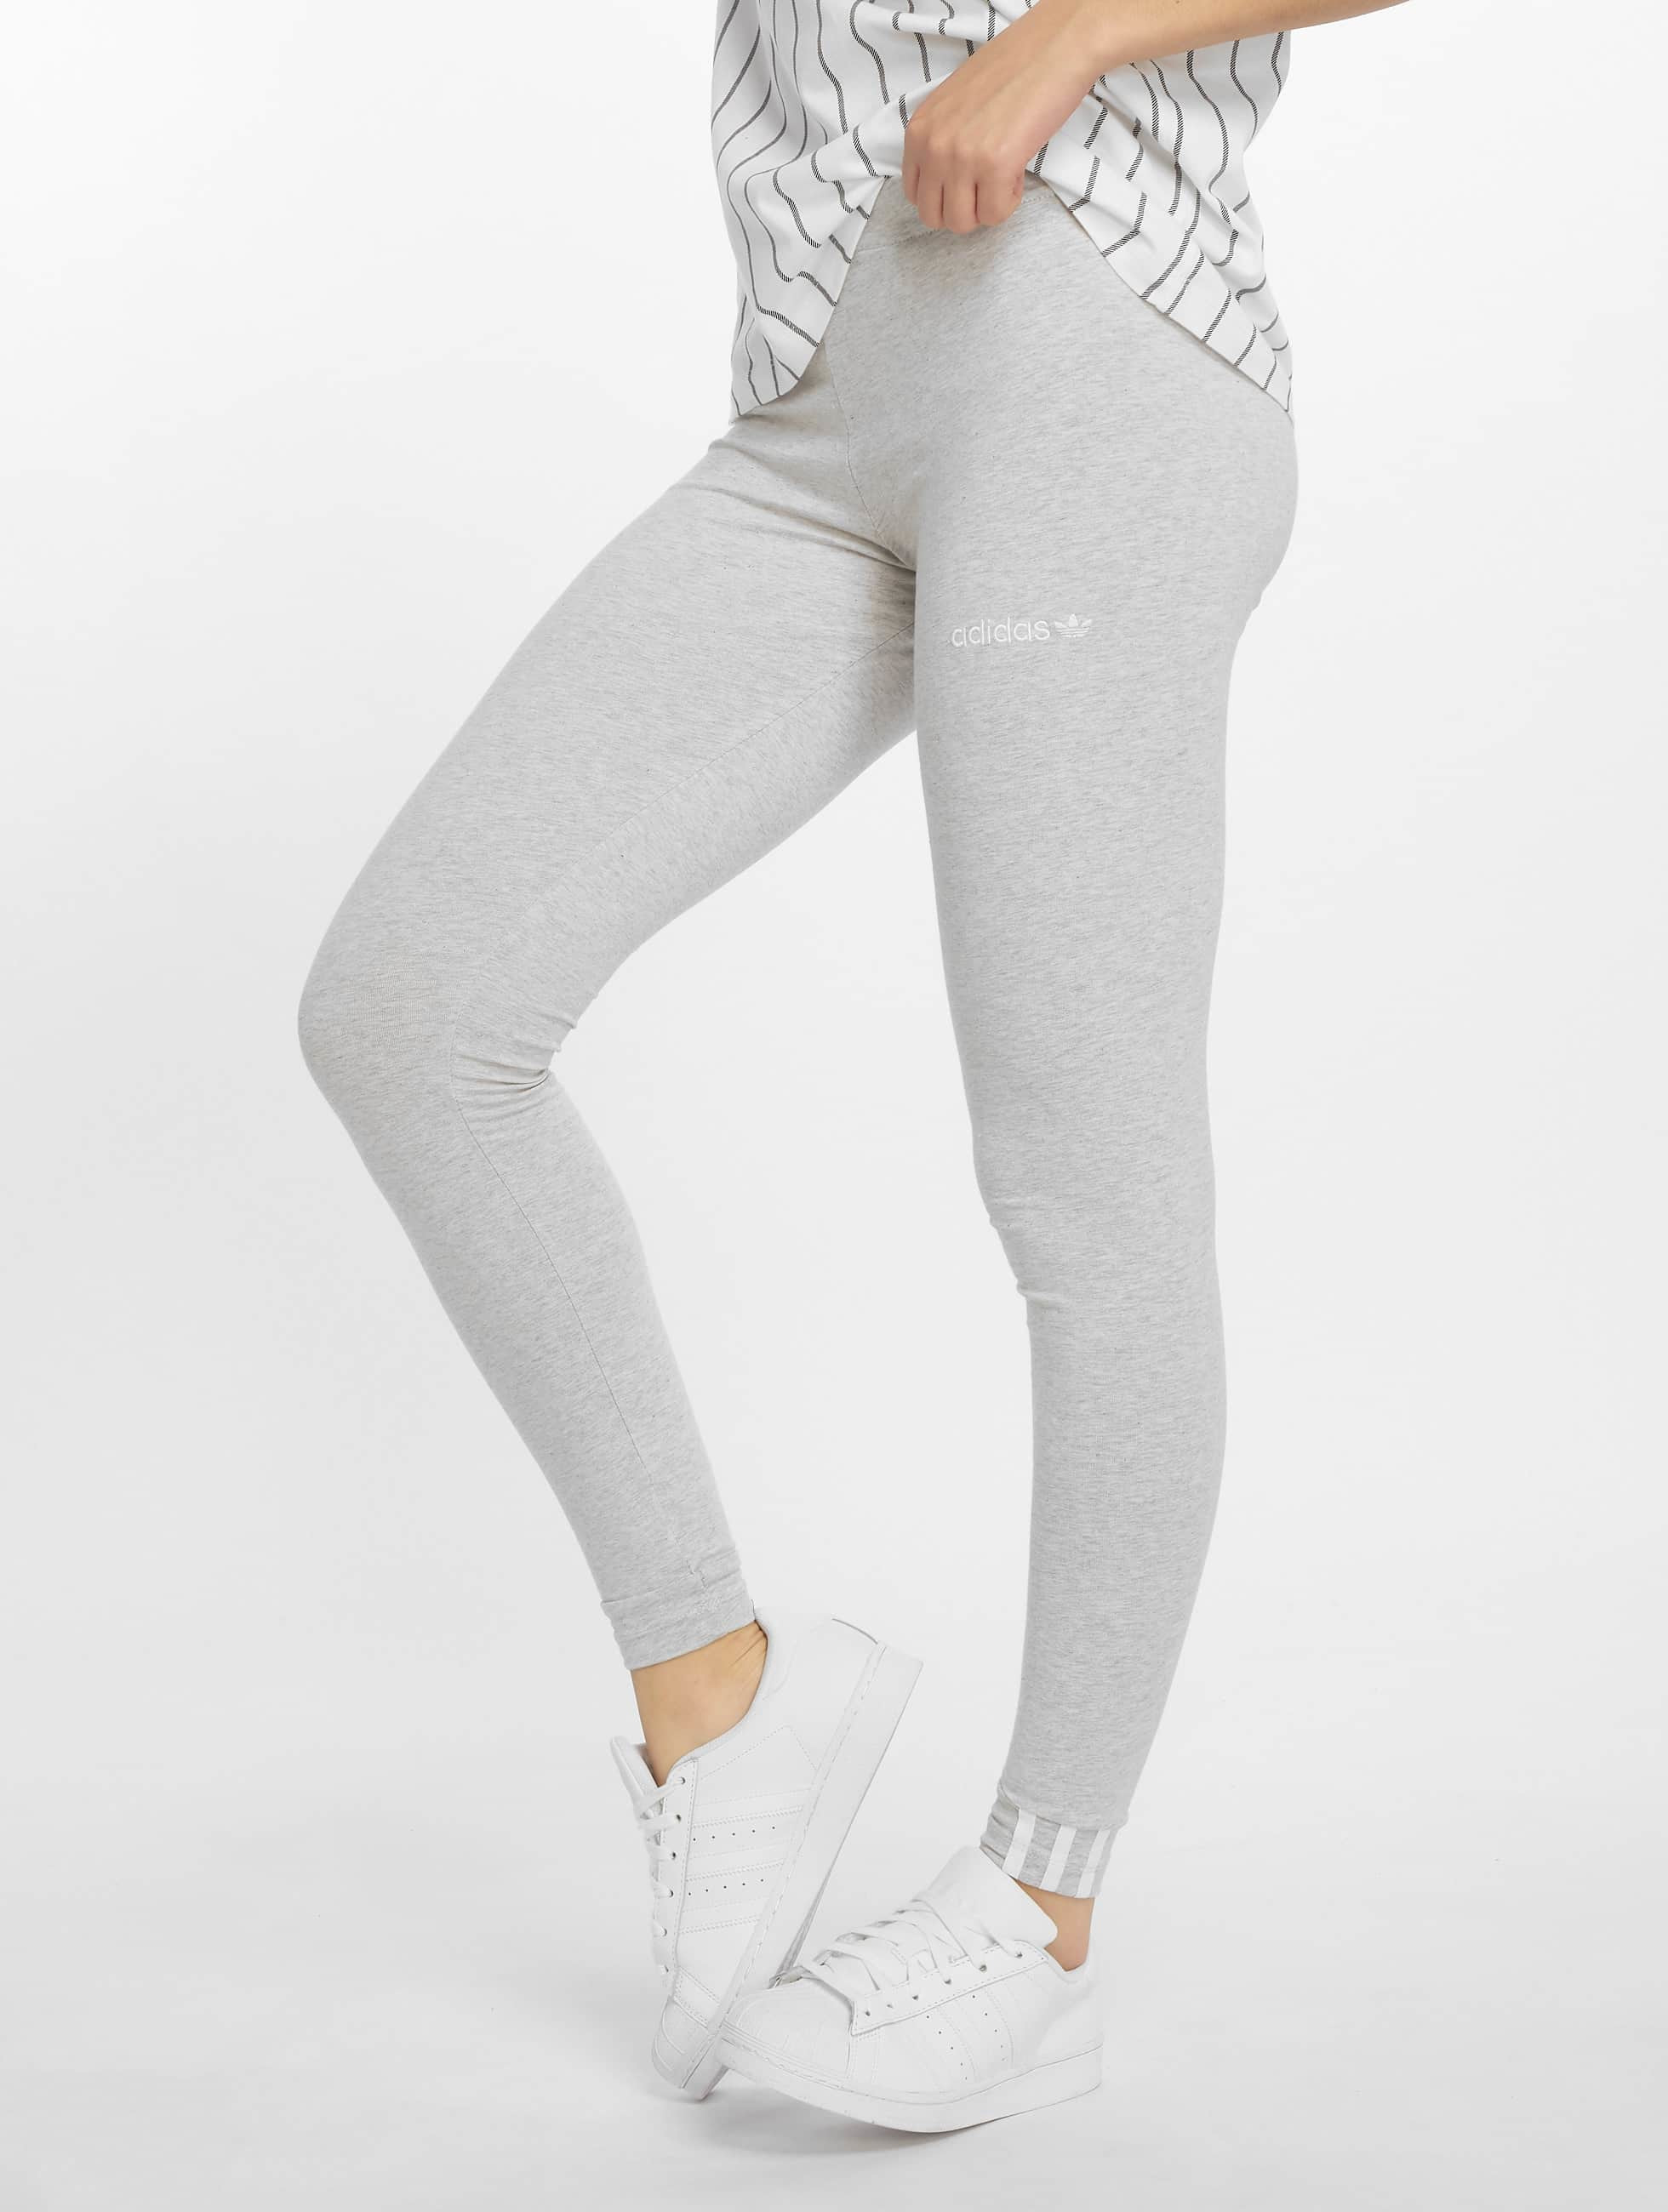 be06a71dda1 adidas originals broek / Legging Coeeze in grijs 599180